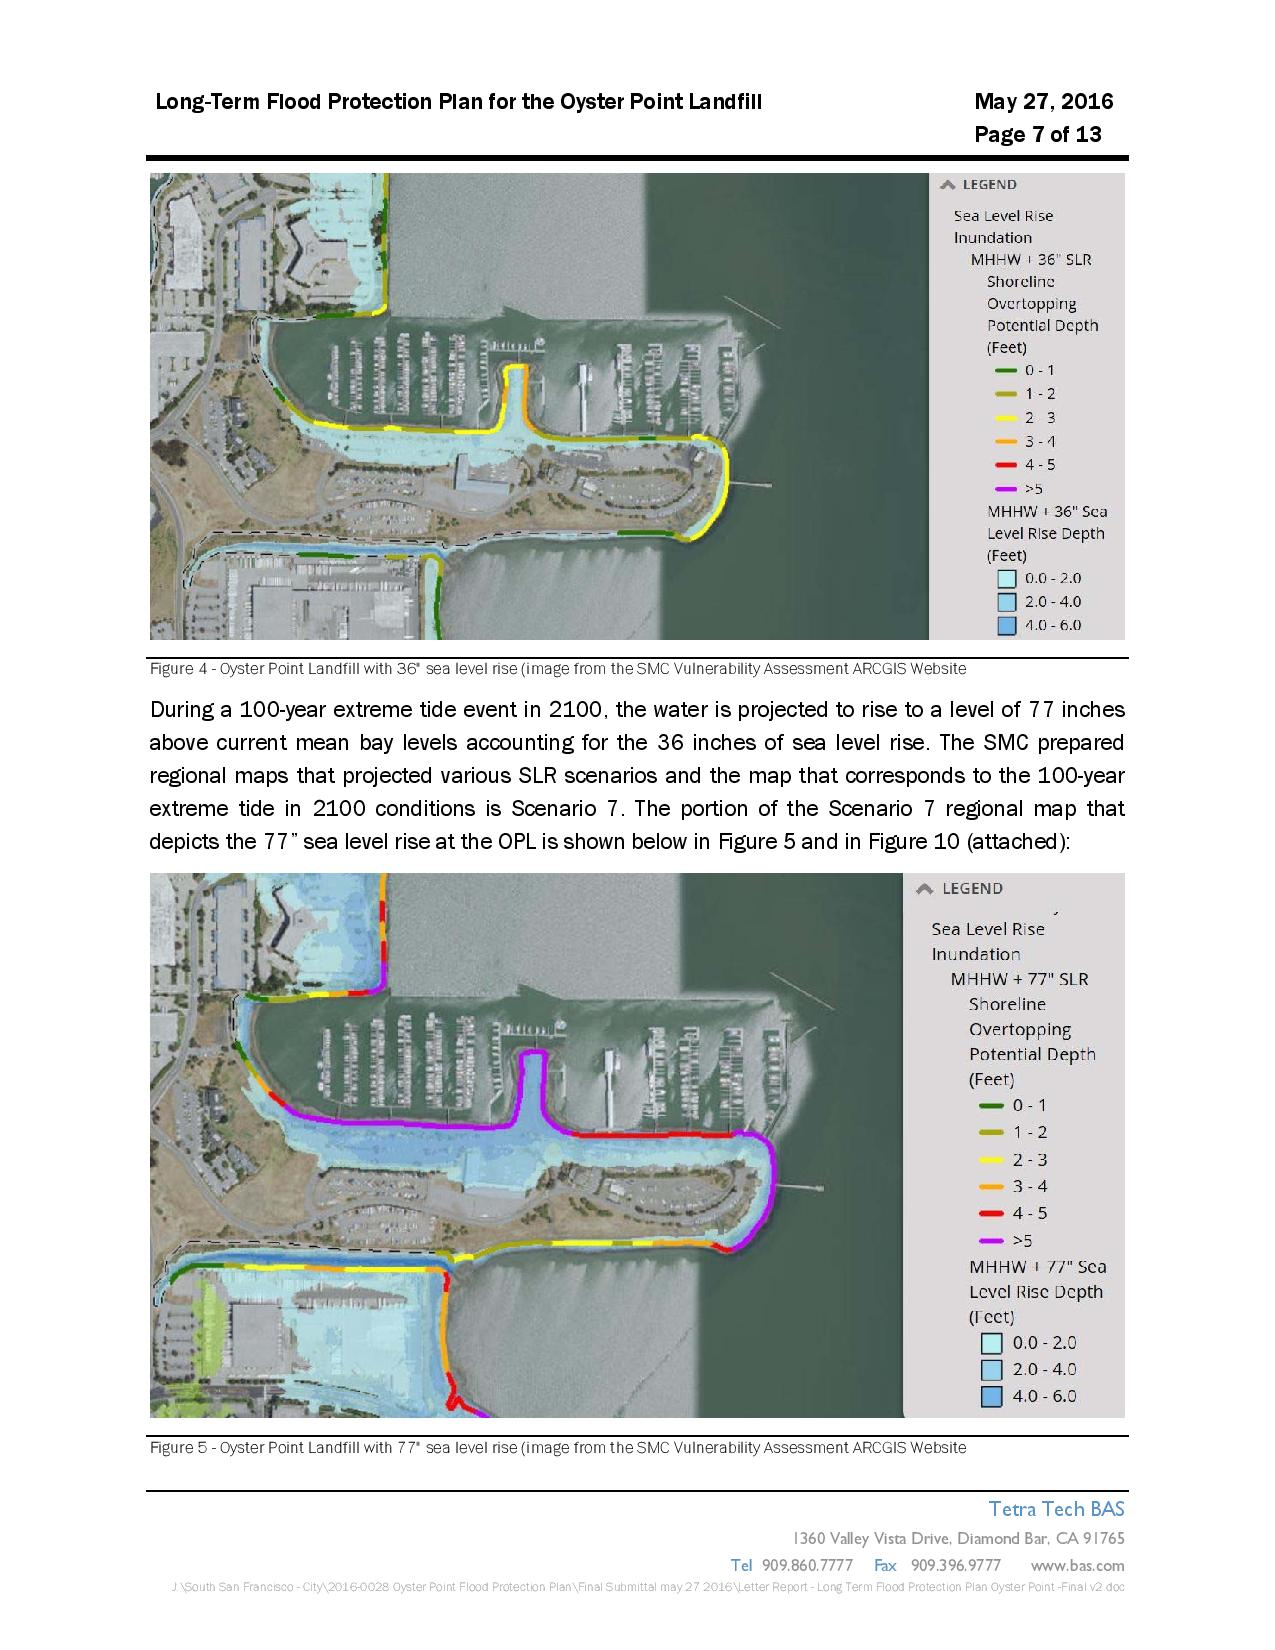 City of SSF Oyster Pt. Landfill Long-Term Flood Protection Letter & Plan-2-page-009